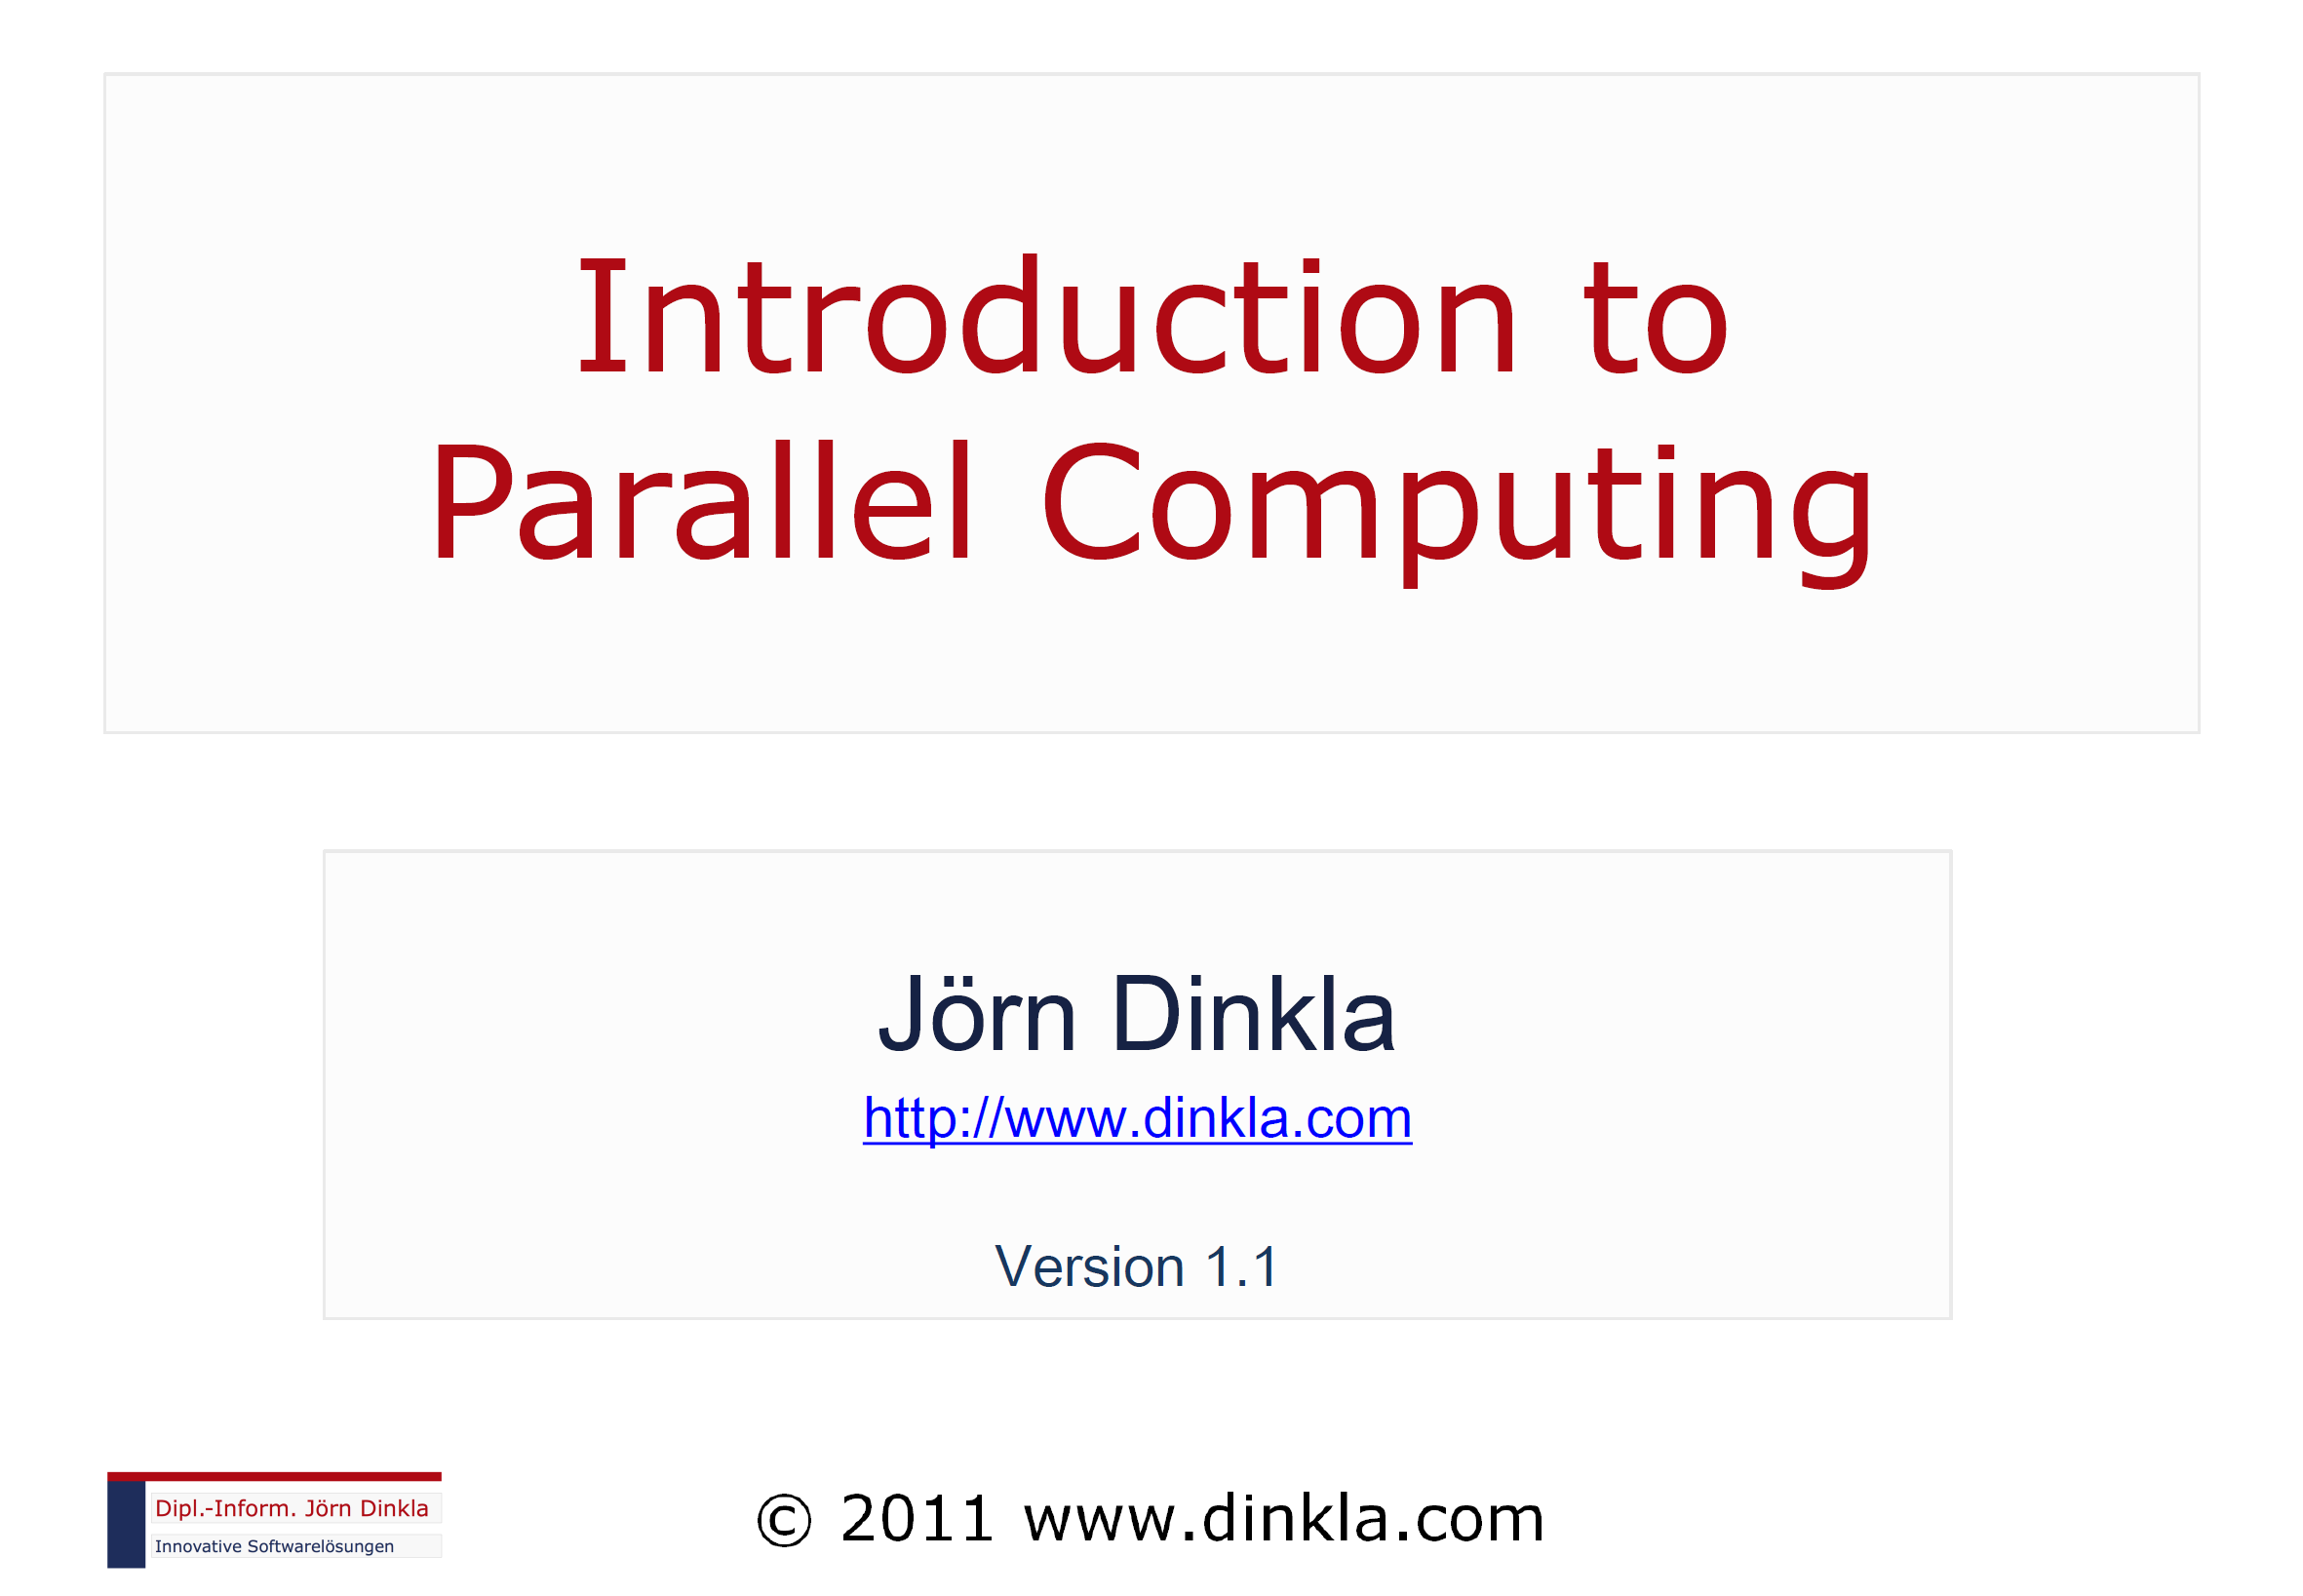 Slides: 'Introduction to Parallel Computing'